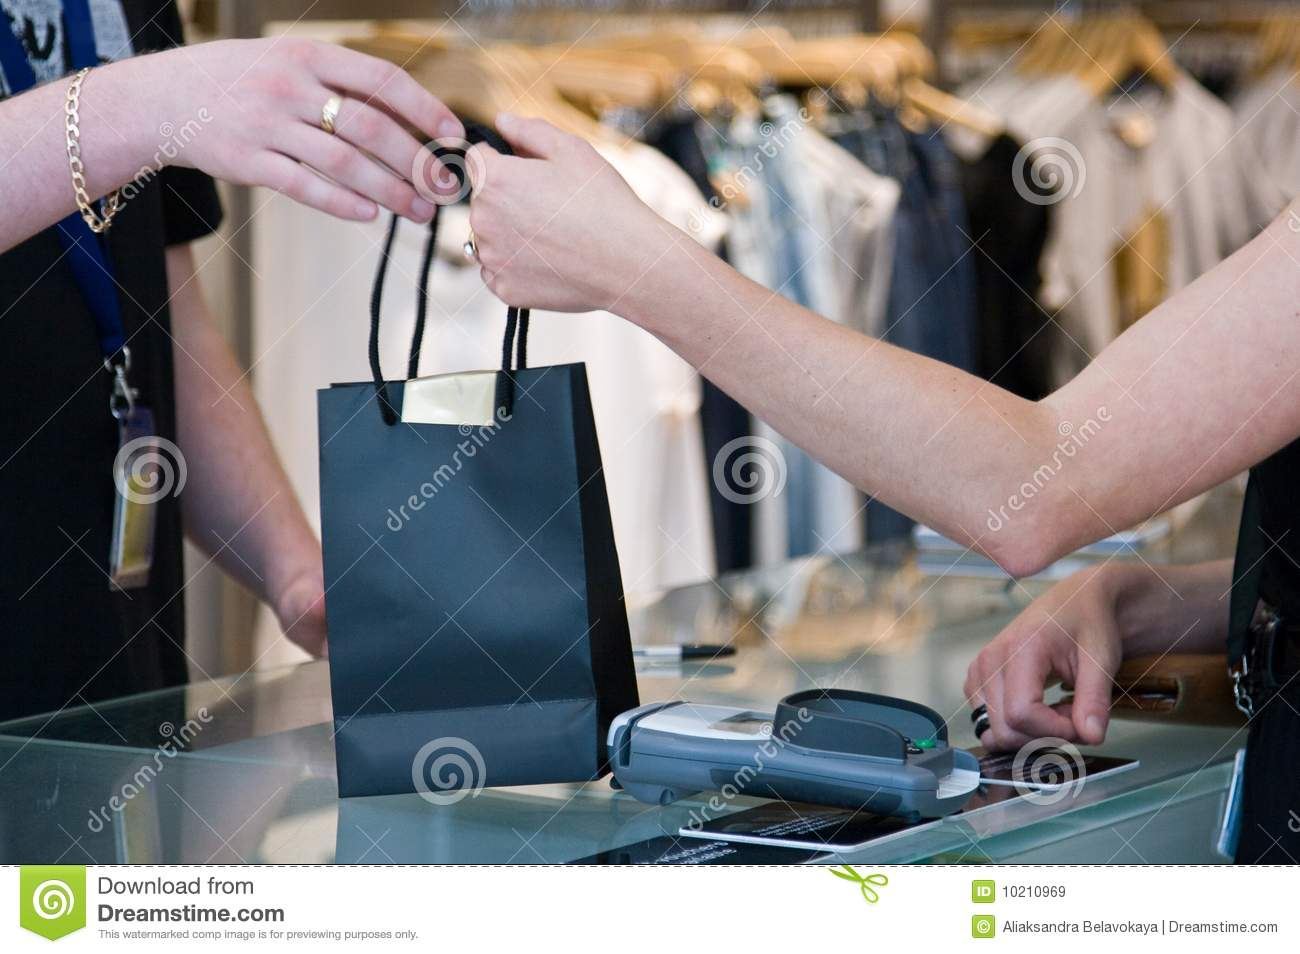 Passing the shopping bag